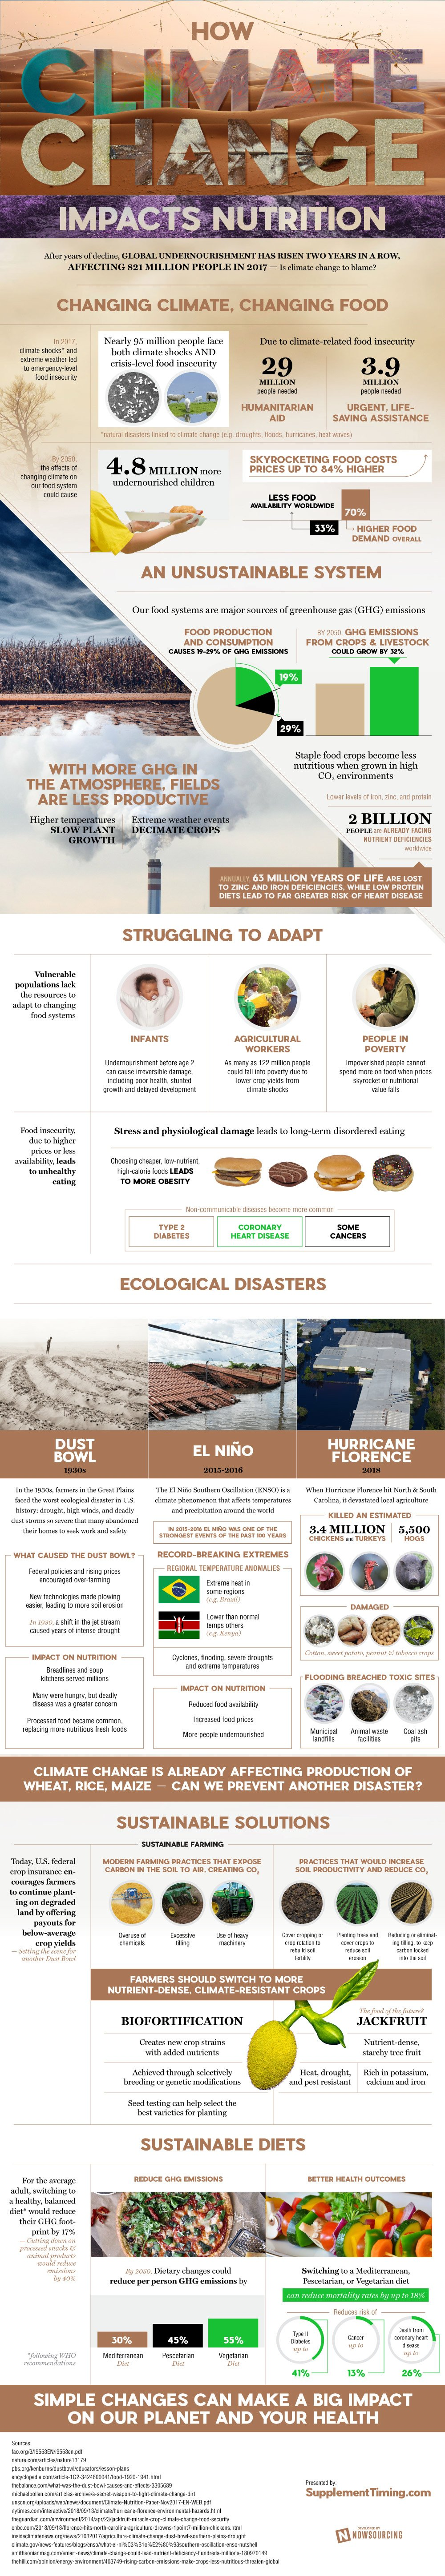 How Climate Change May Affect Nutrition IG food insecurity